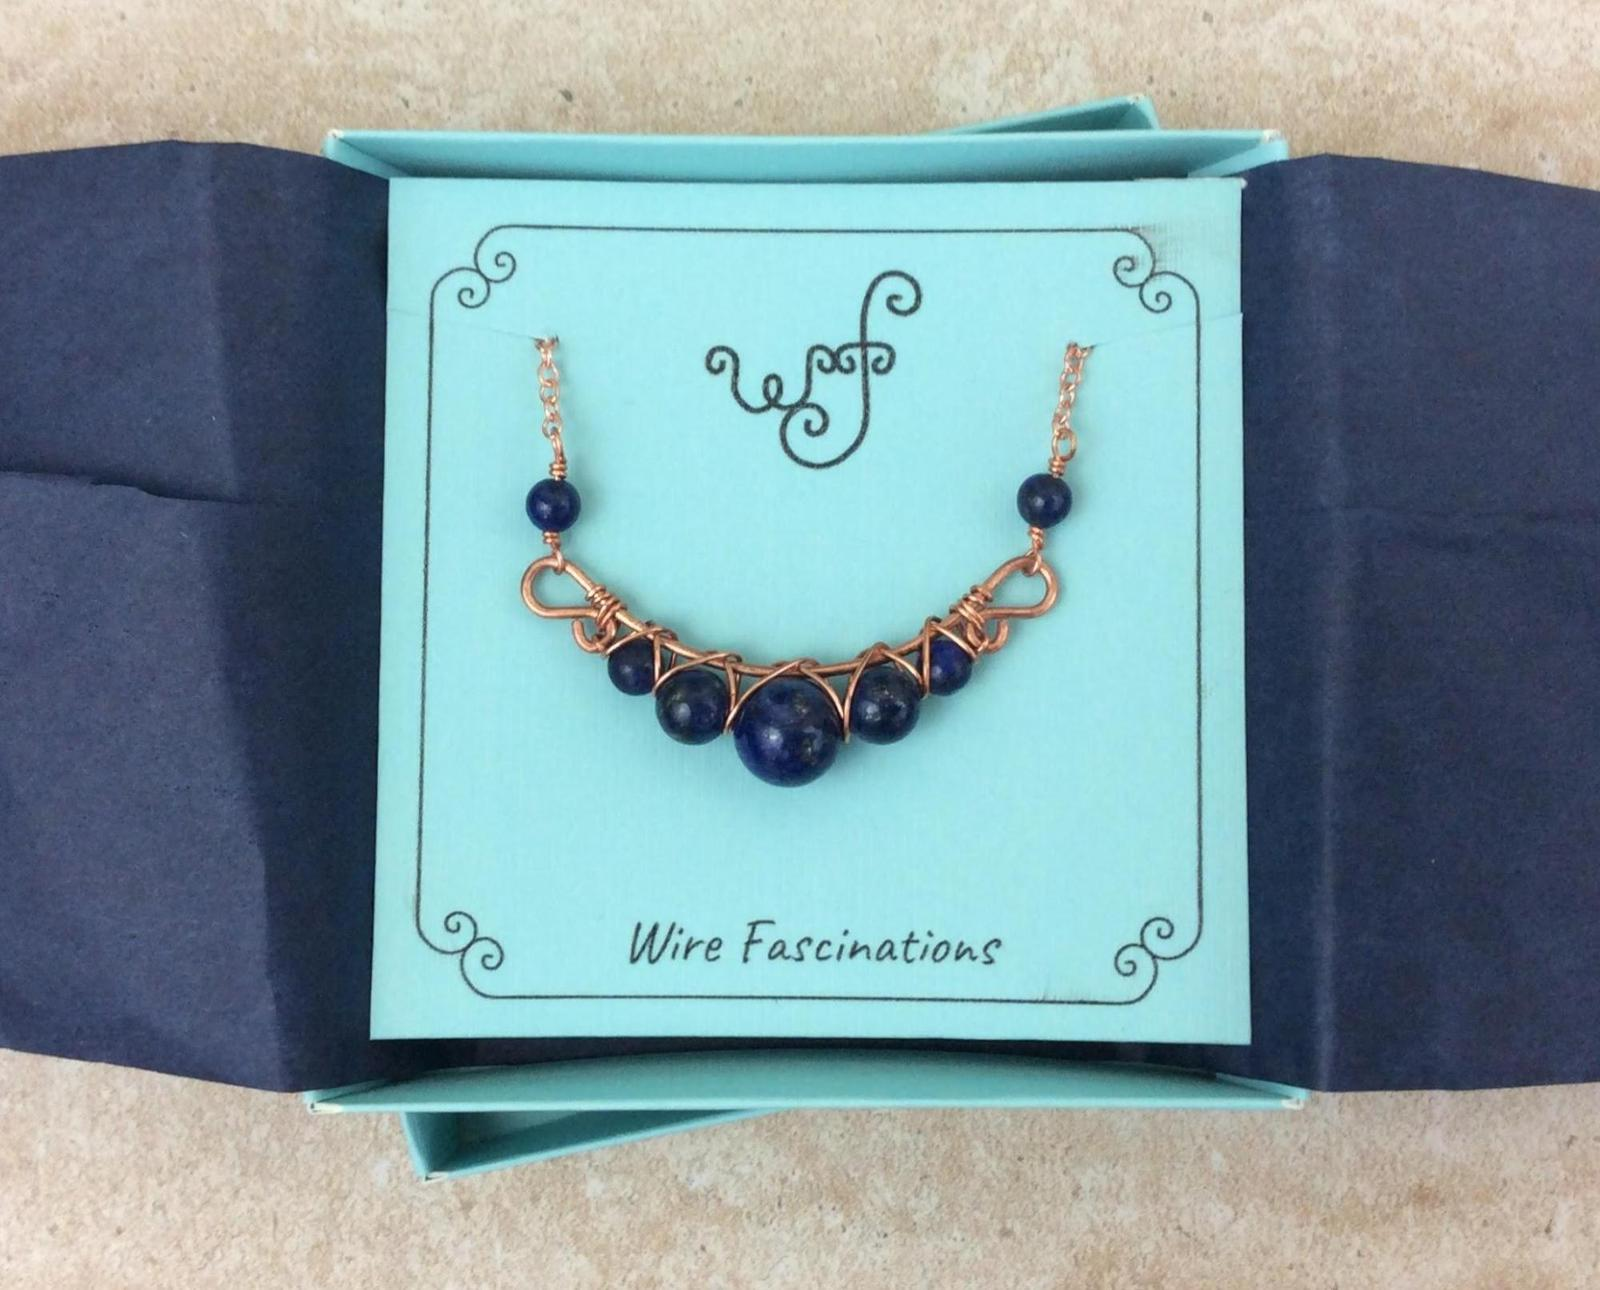 Handmade lapis lazuli necklace: criss cross copper wire wrapped image 10